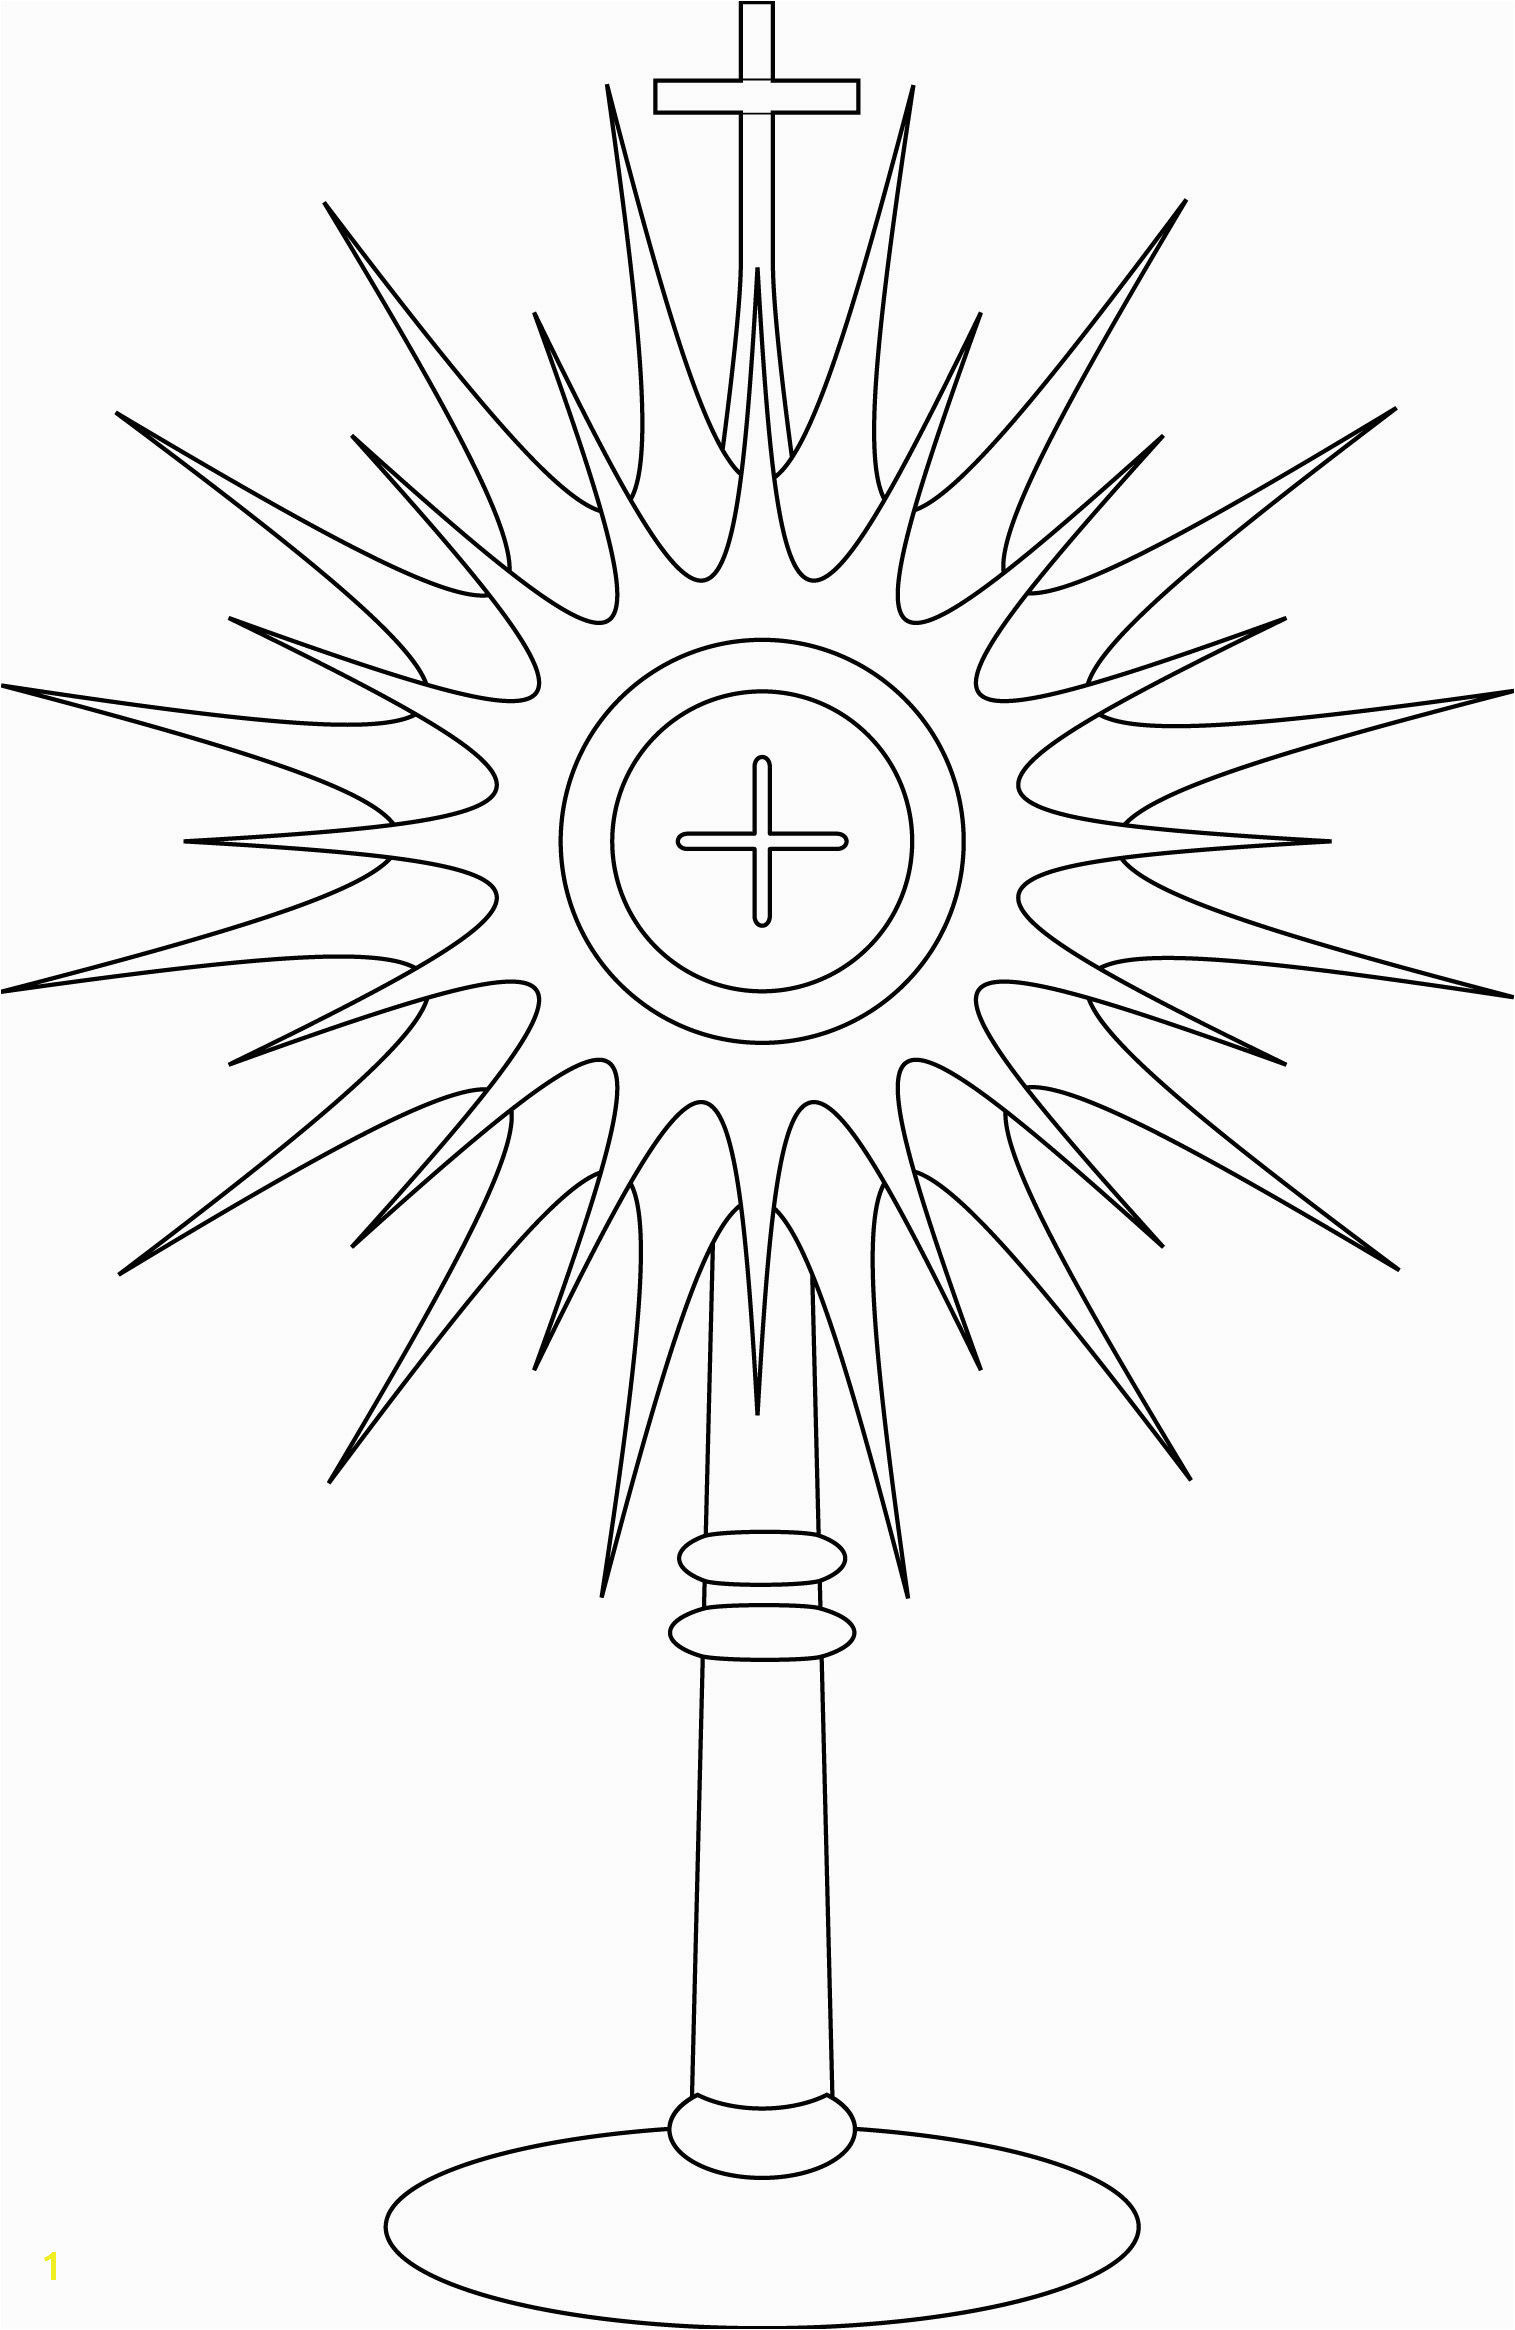 monstrance coloring page Google Search